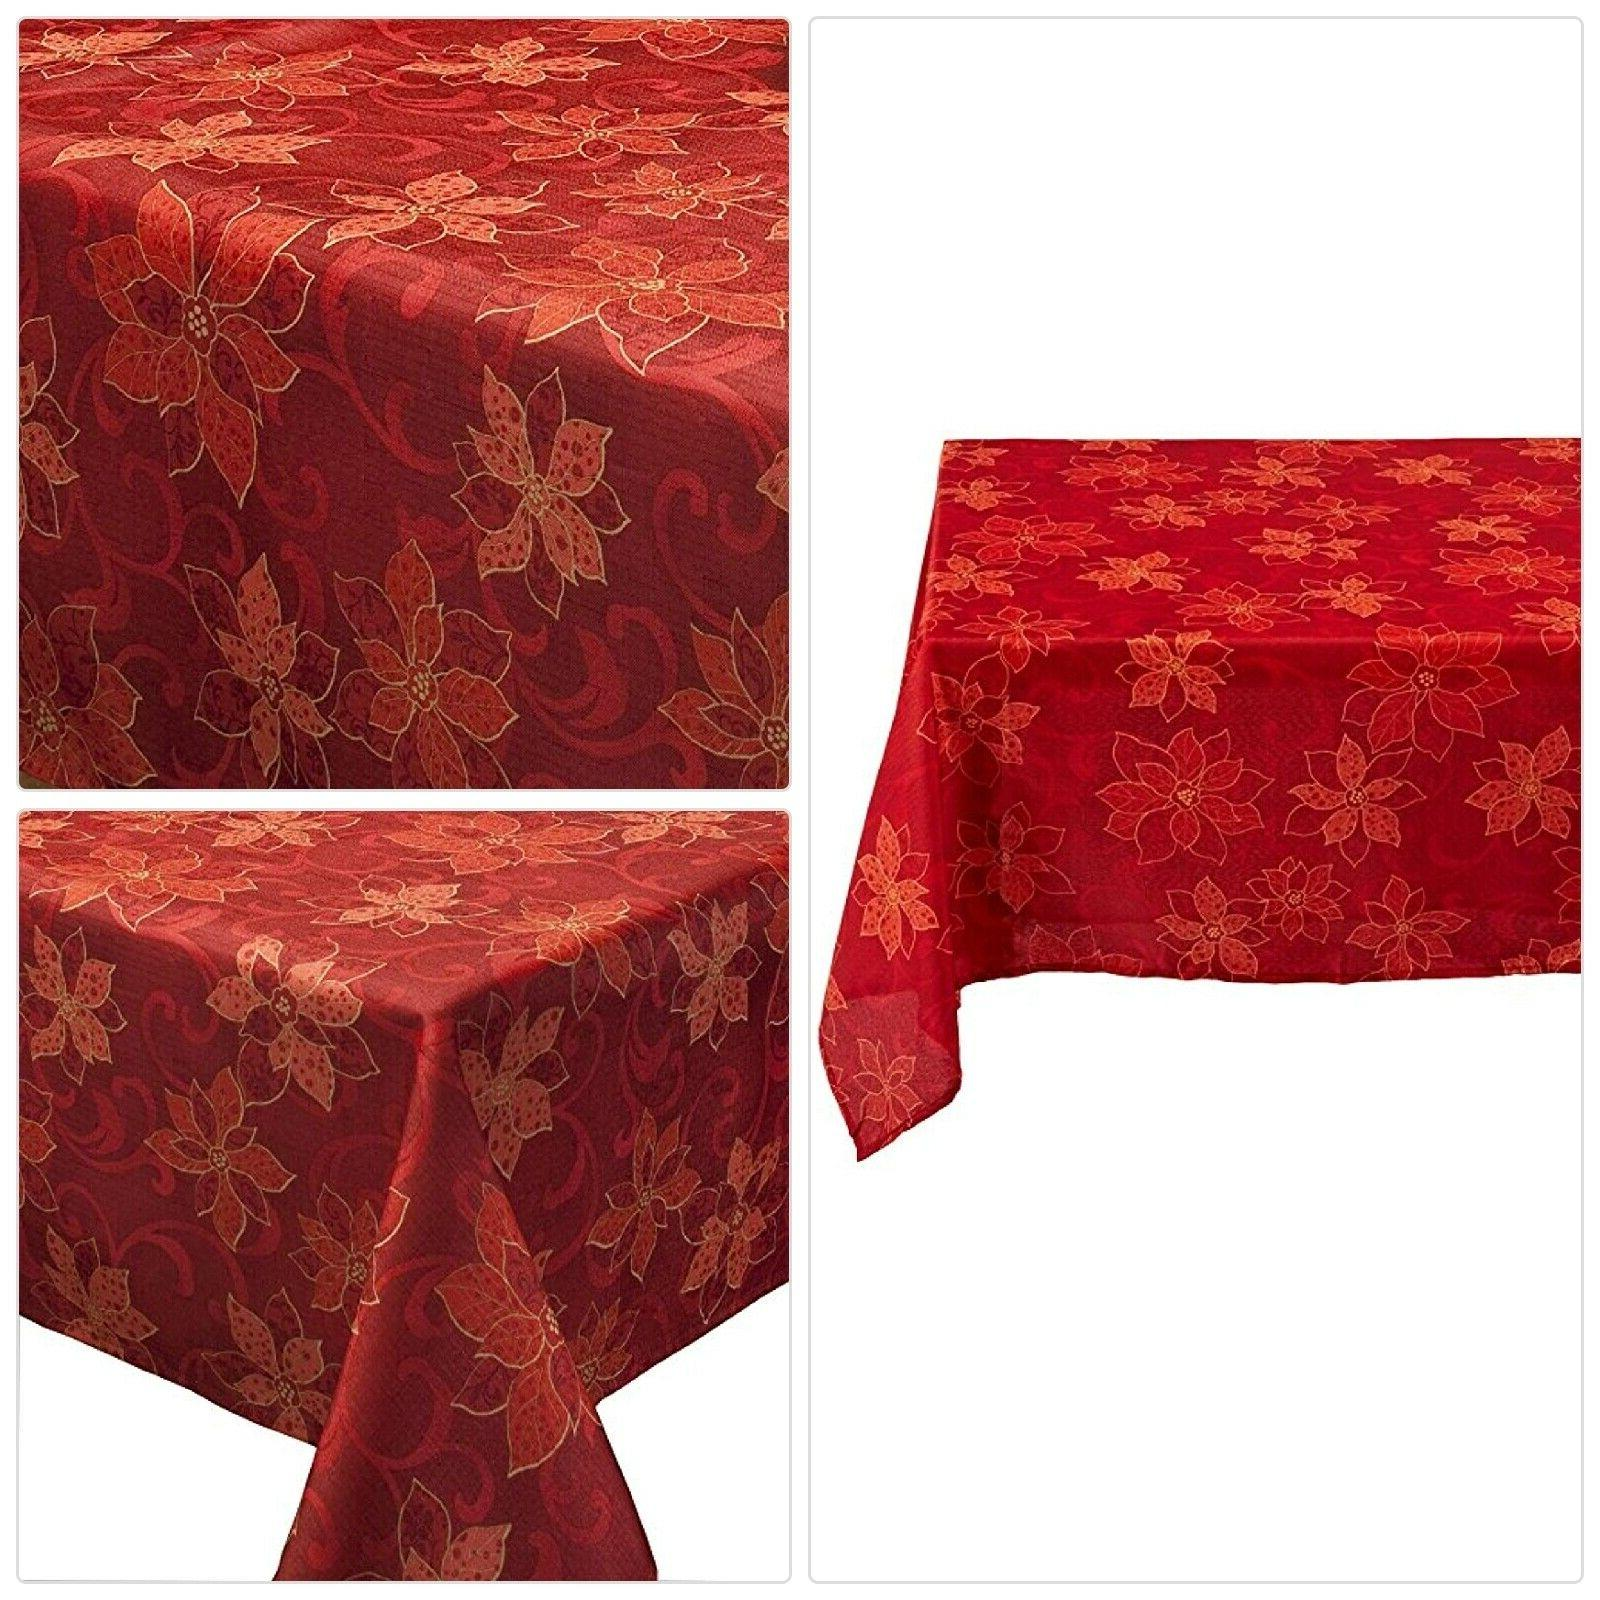 benson mills poinsettia scroll printed fabric tablecloth